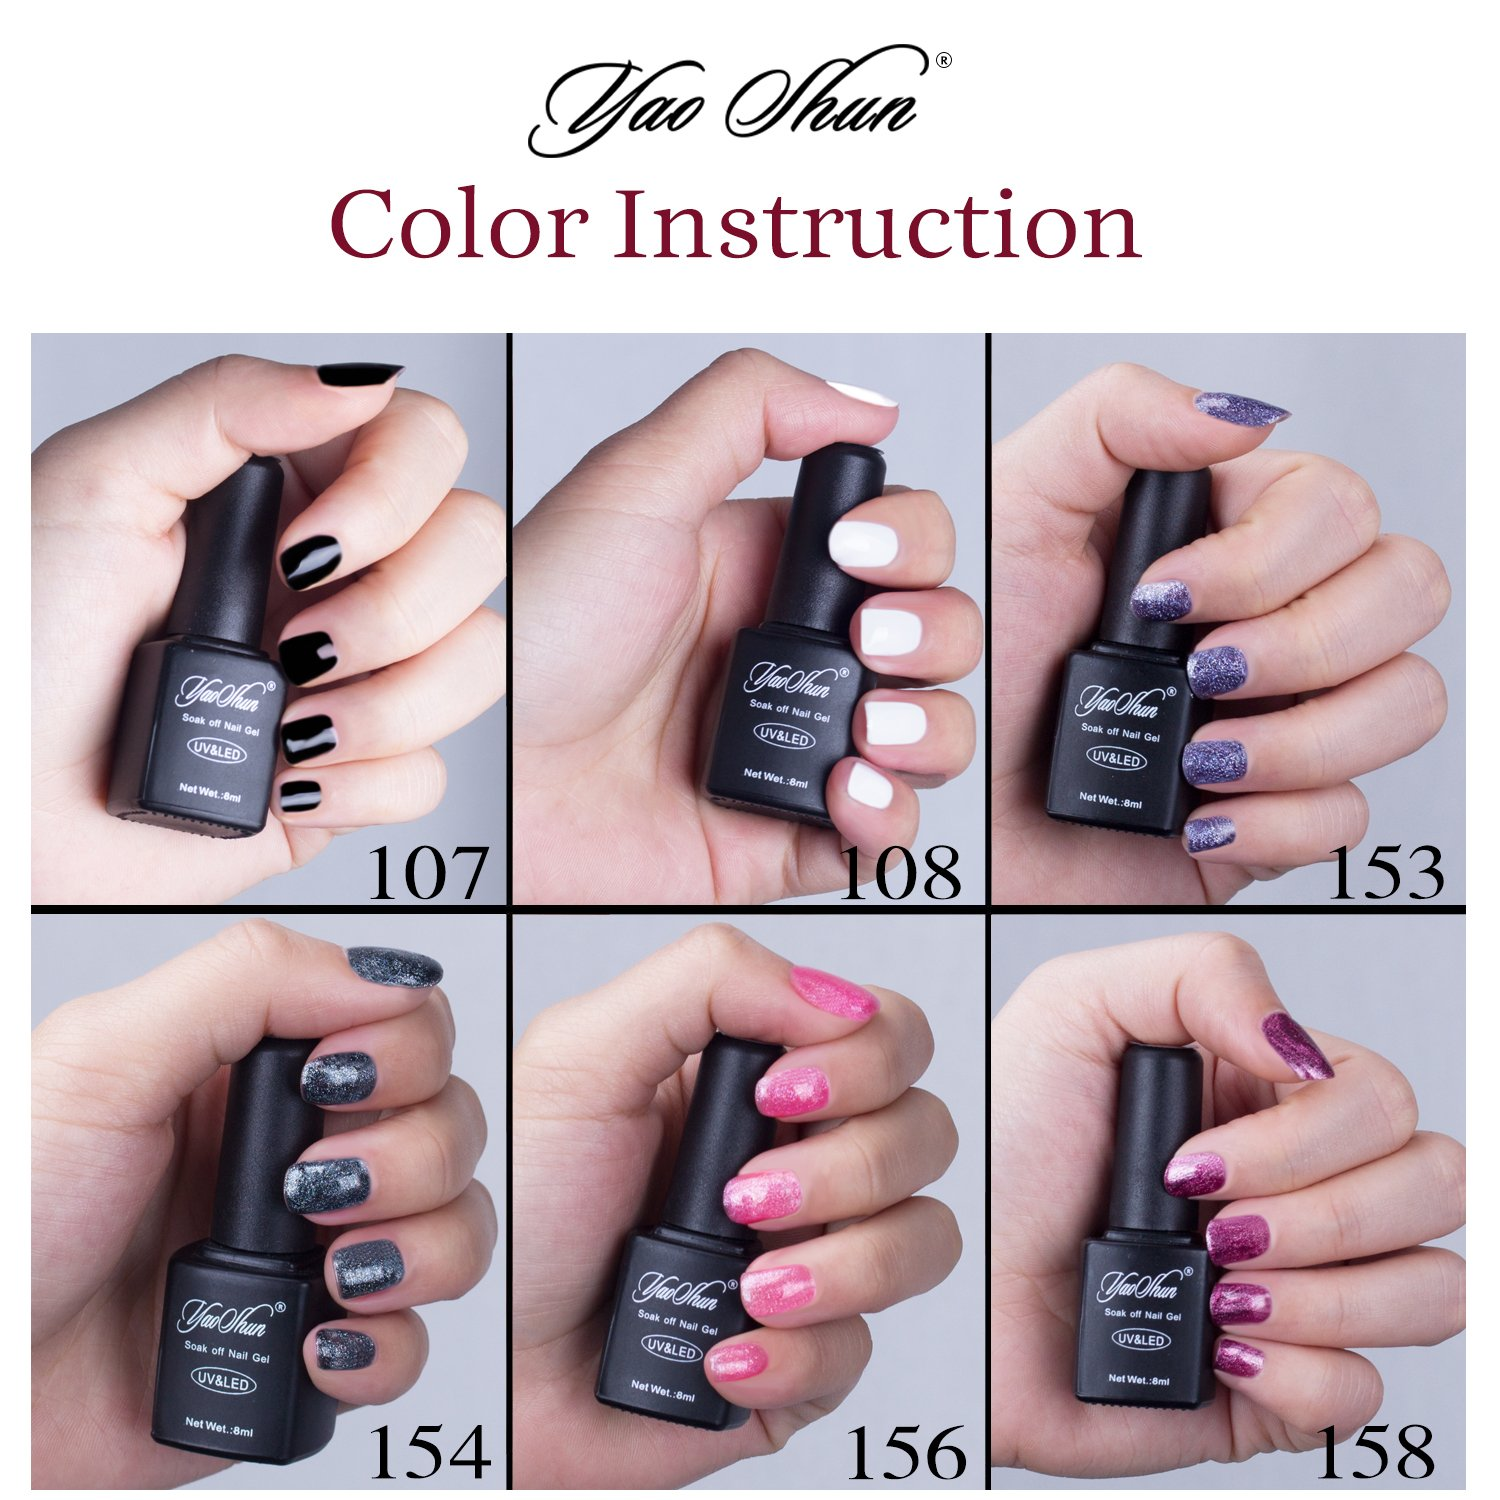 YaoShun UV LED Gel Nail Polish Establece 6 Colores + Capa Base y Capa Superior 8ml, # 004: Amazon.es: Belleza